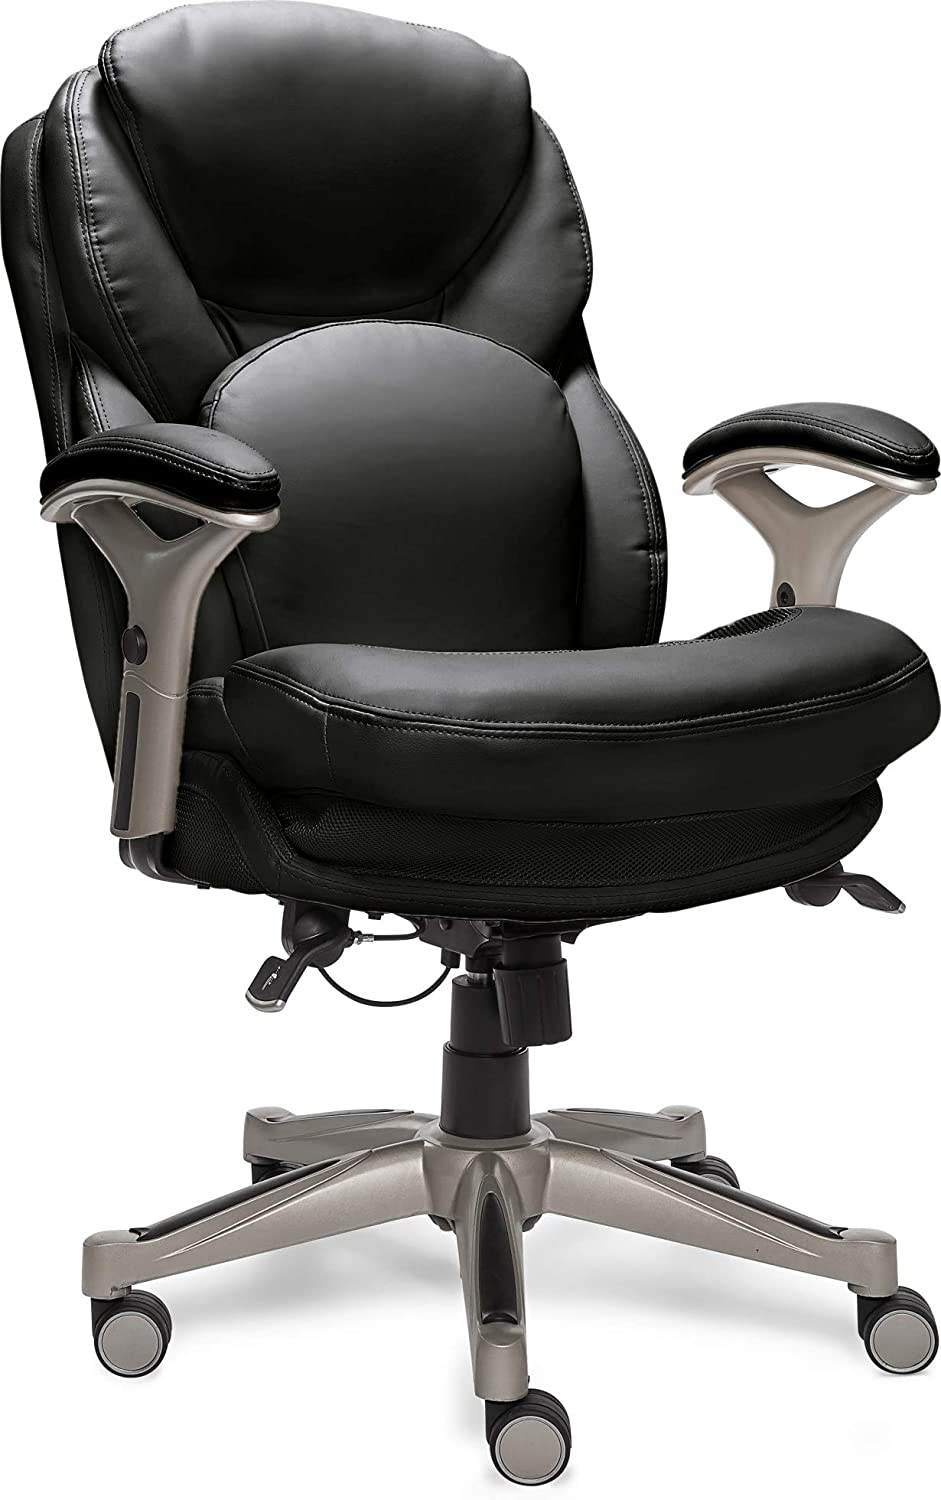 Serta Bonded Leather Office Chair